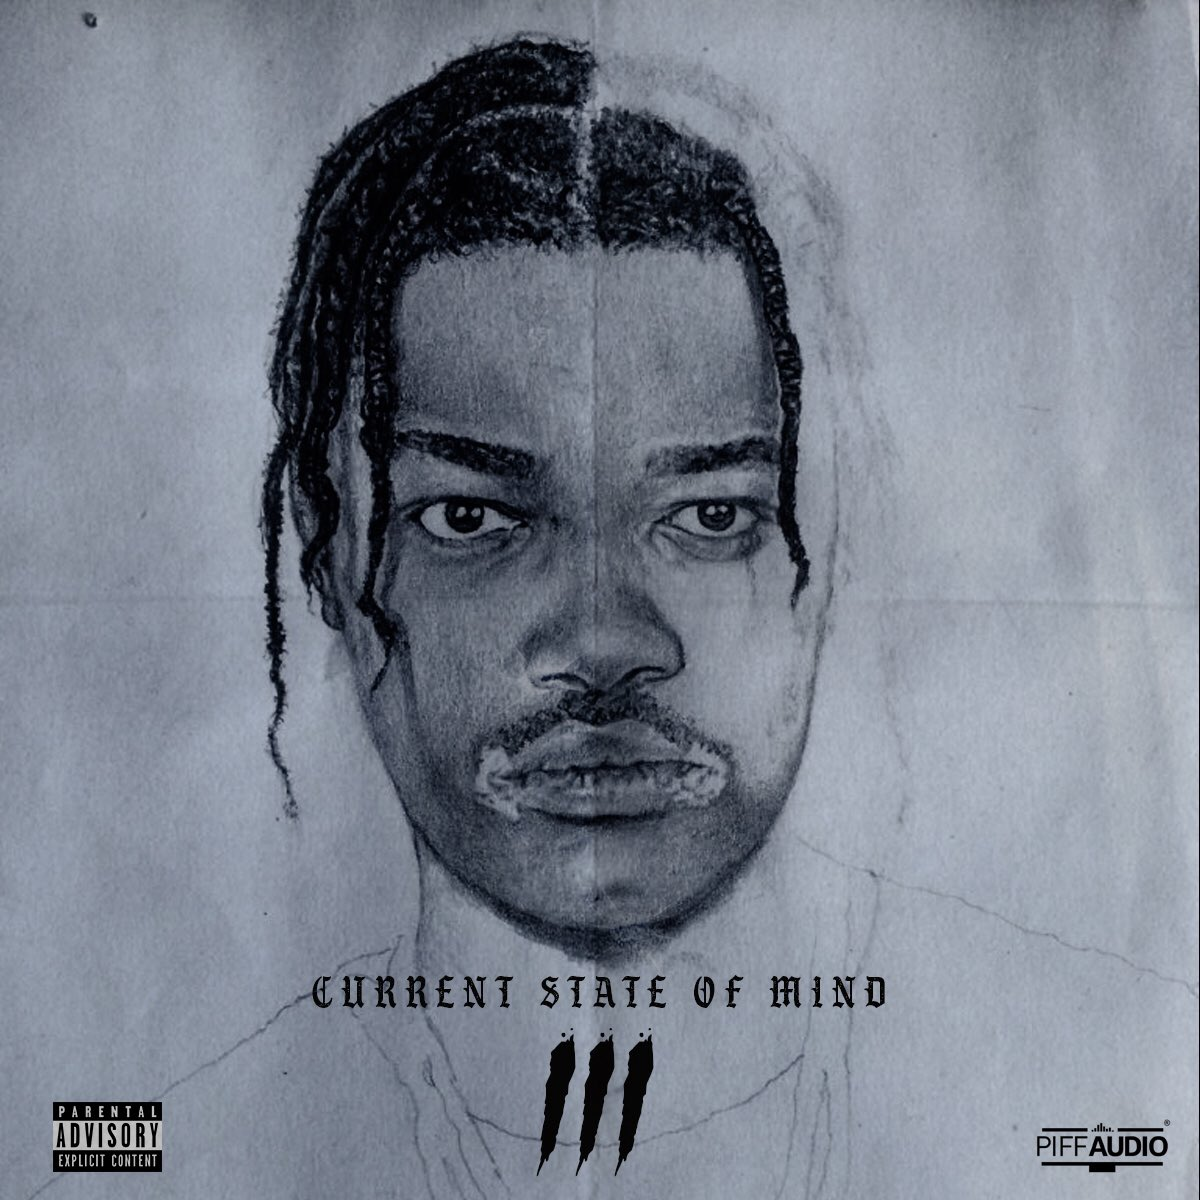 zoocci coke dope New Zoocci Coke Dope 'Current State Of Mind III' Project Ready To Drop D675kNXWkAEvYq5